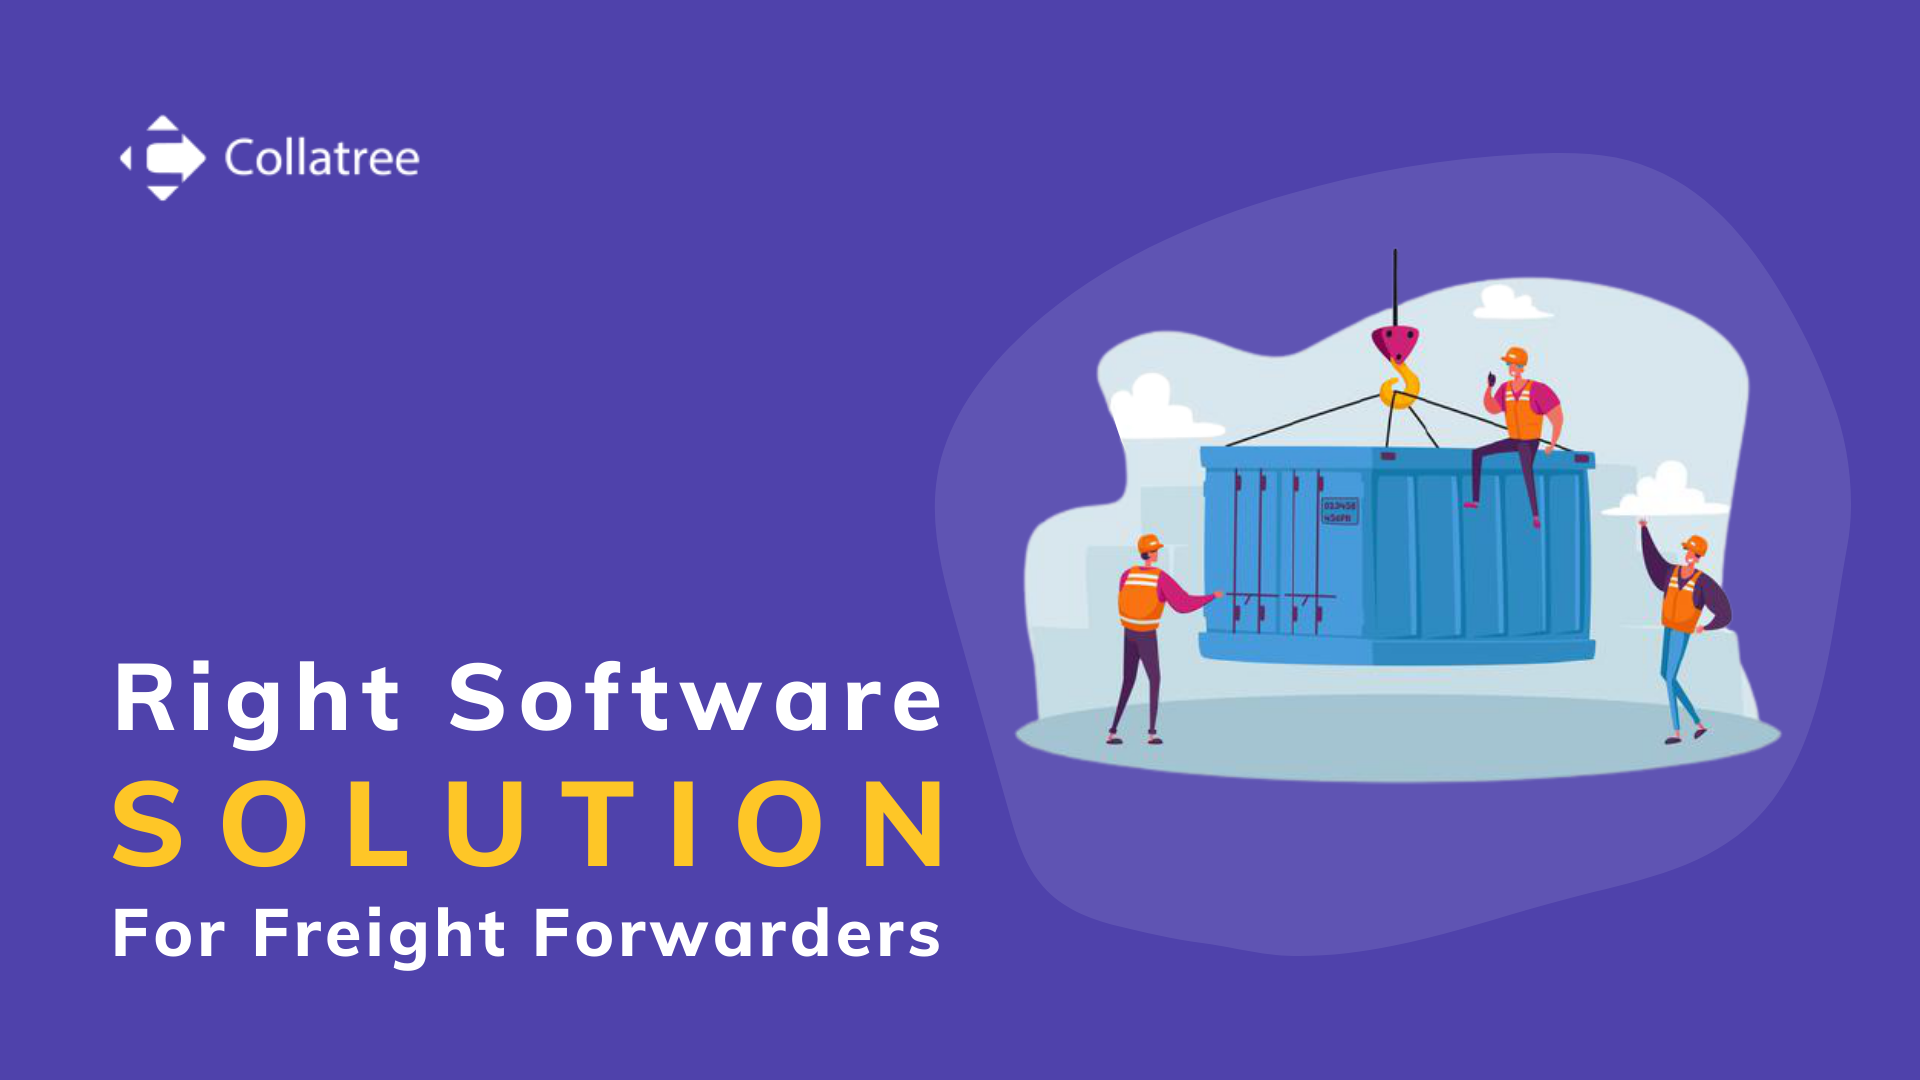 Right Software Solution for Freight Forwarders